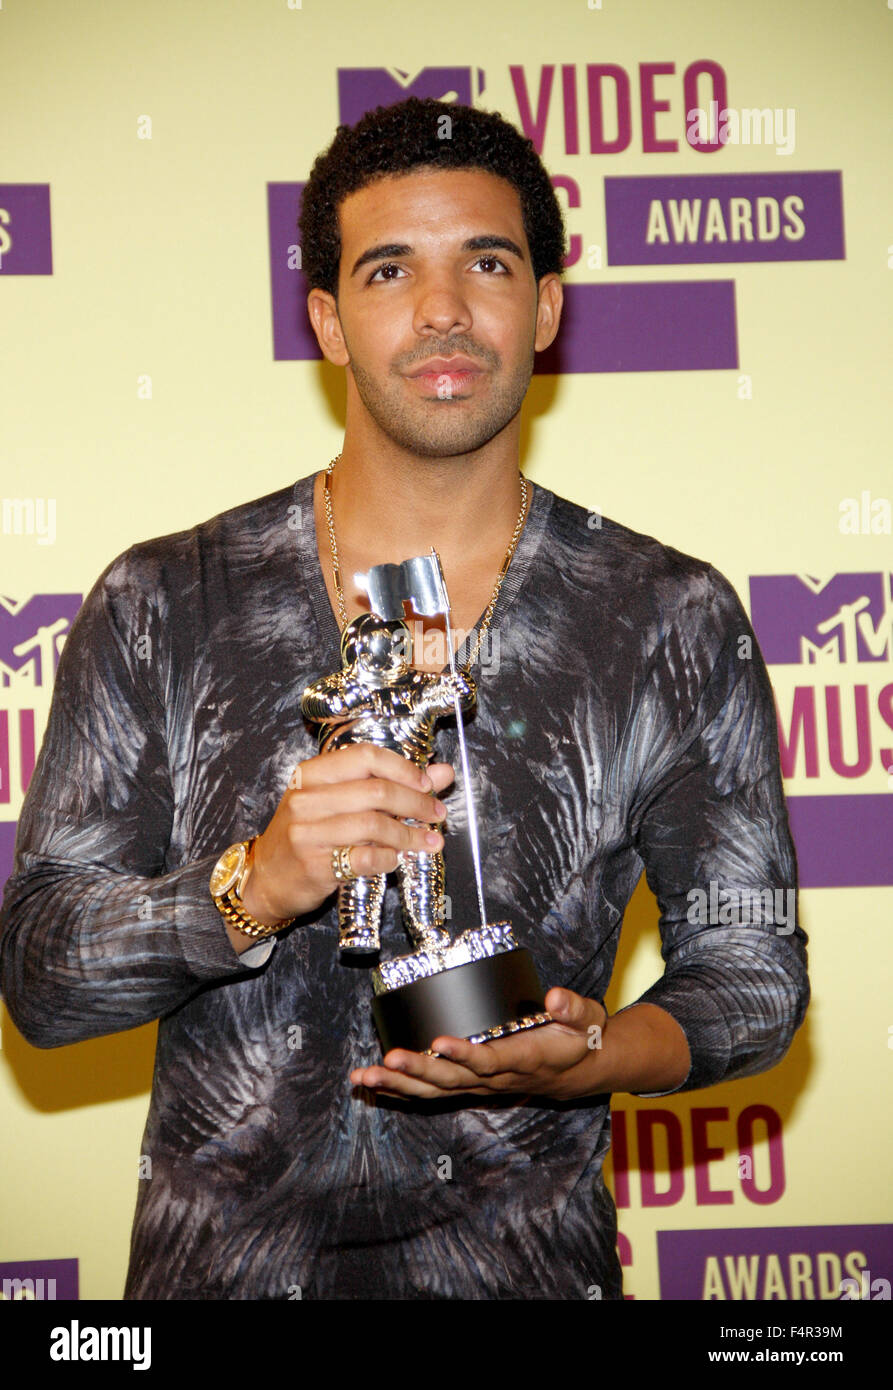 Drake | News, Music Performances and Show Video Clips | MTV